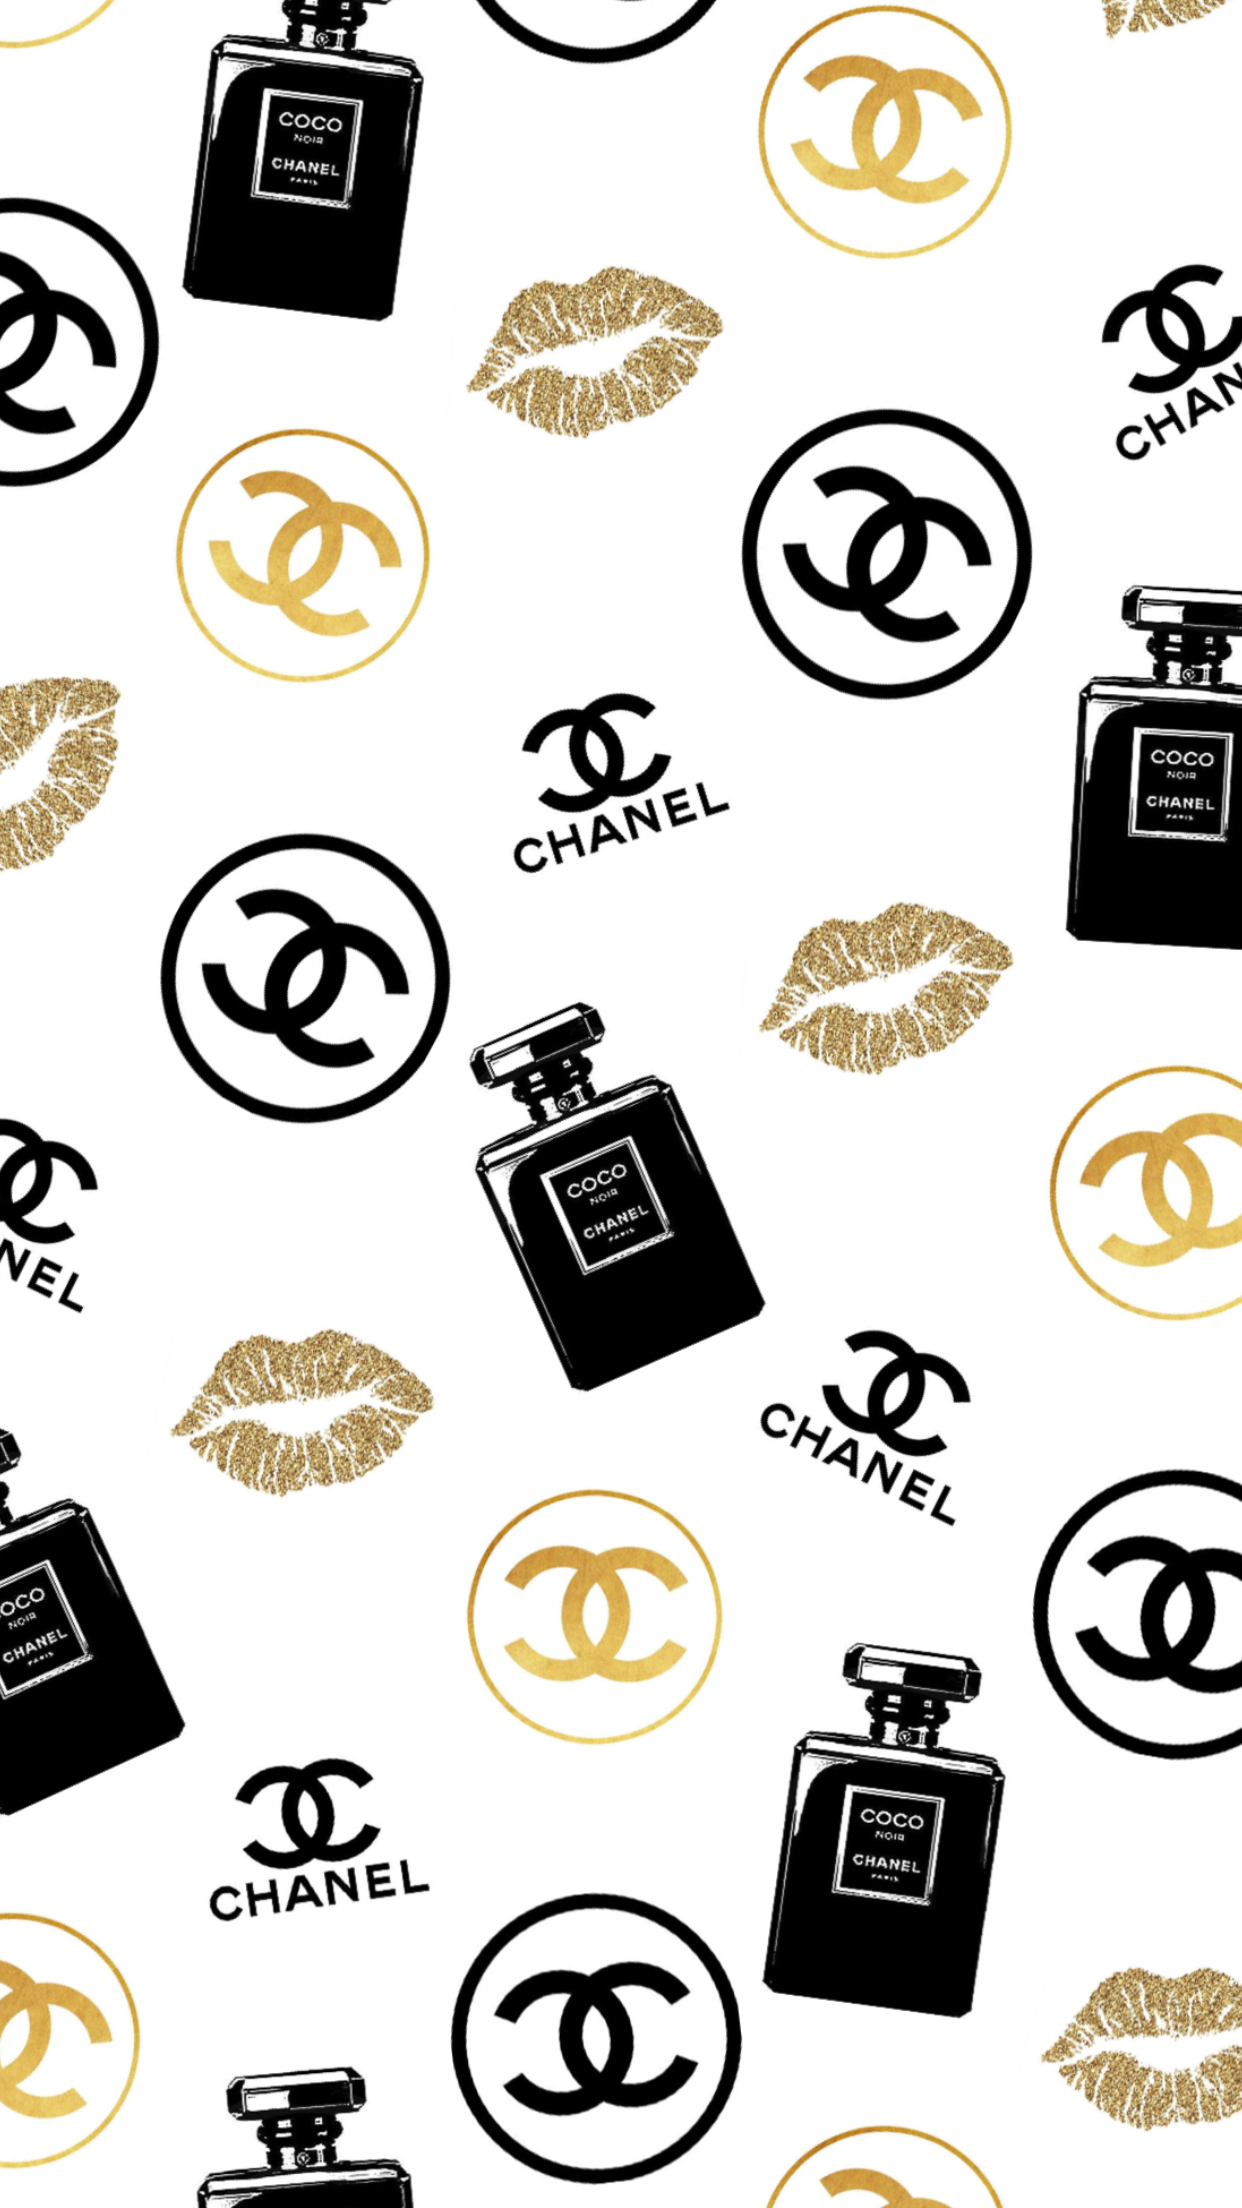 Wallpaper Chanel wallpaper chanel chanelwallpaper